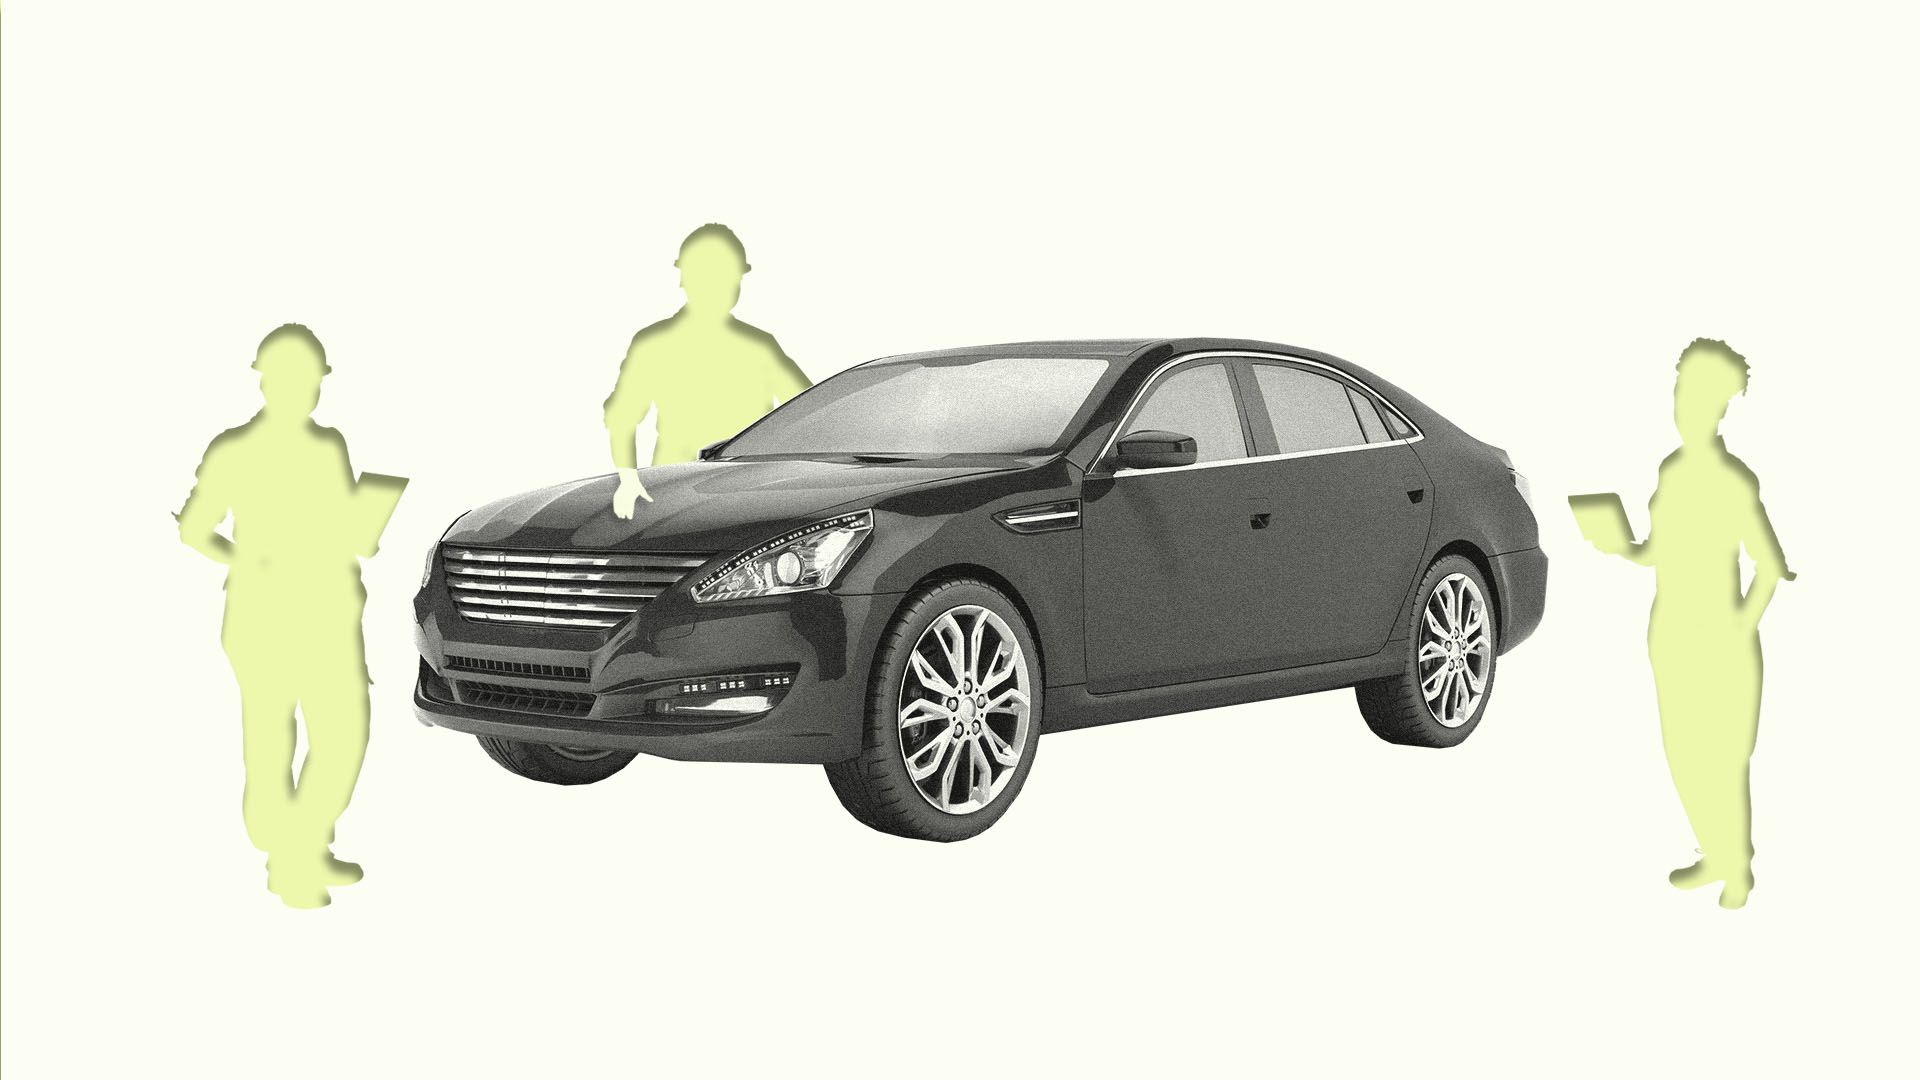 Illustration of experts missing around car